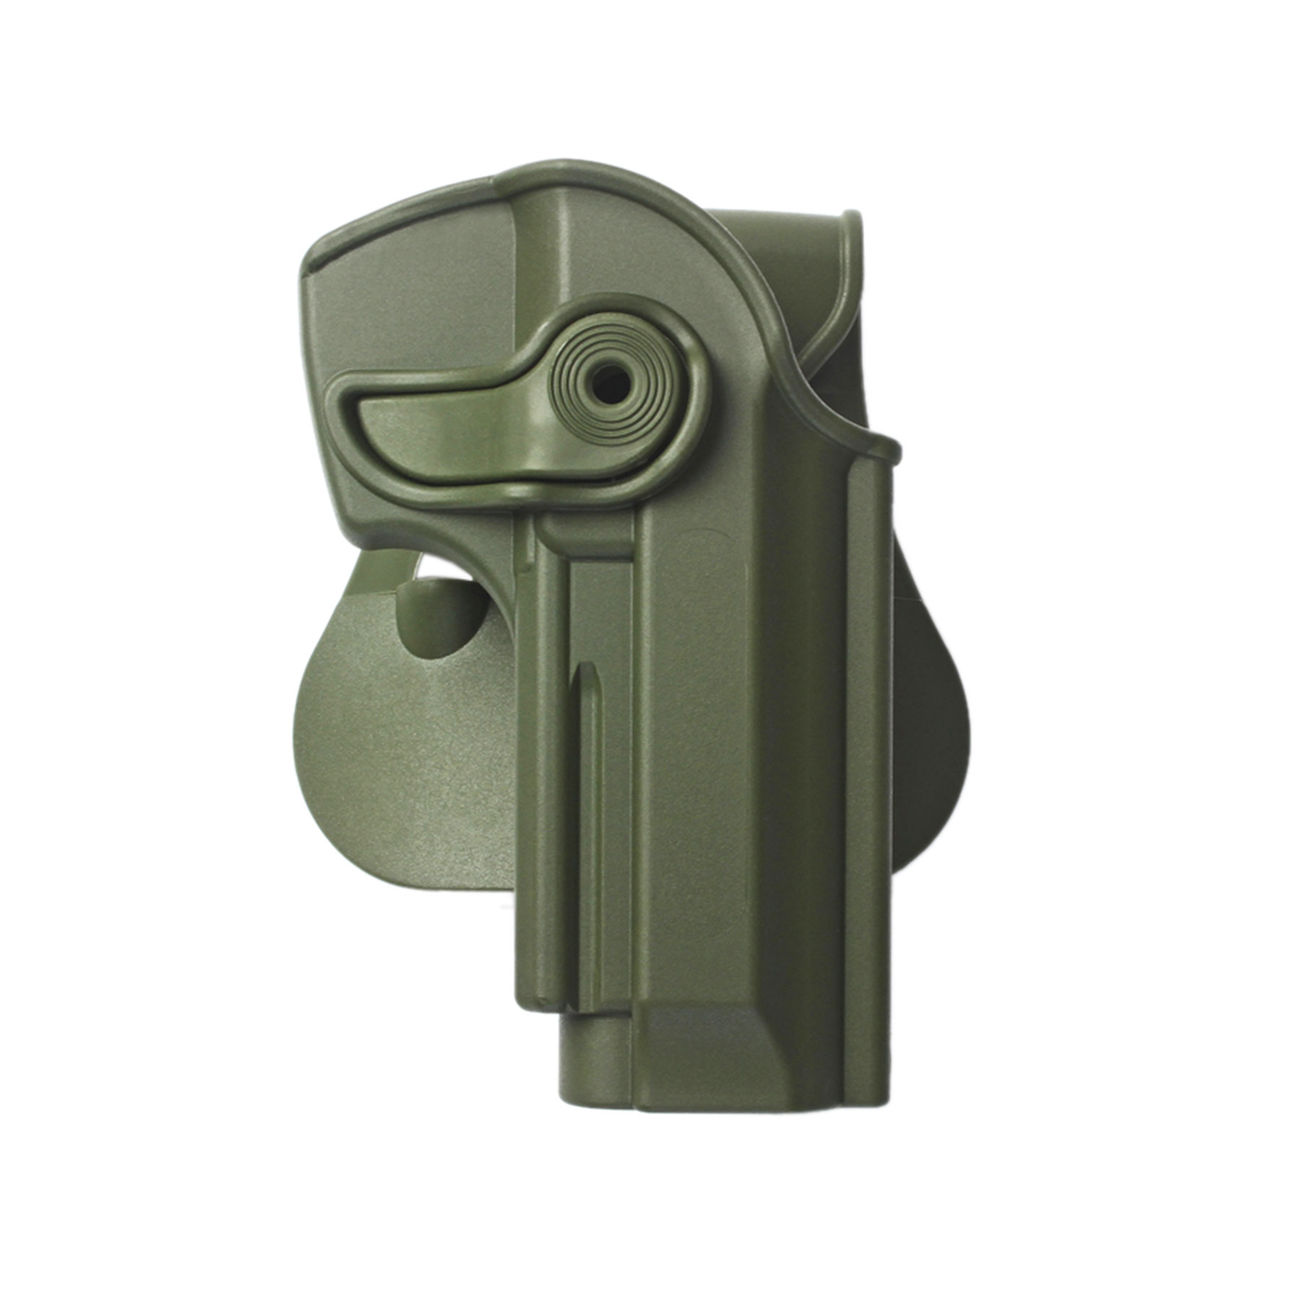 IMI Defense Level 2 Holster Kunststoff Paddle für Beretta 92 Modelle OD 0